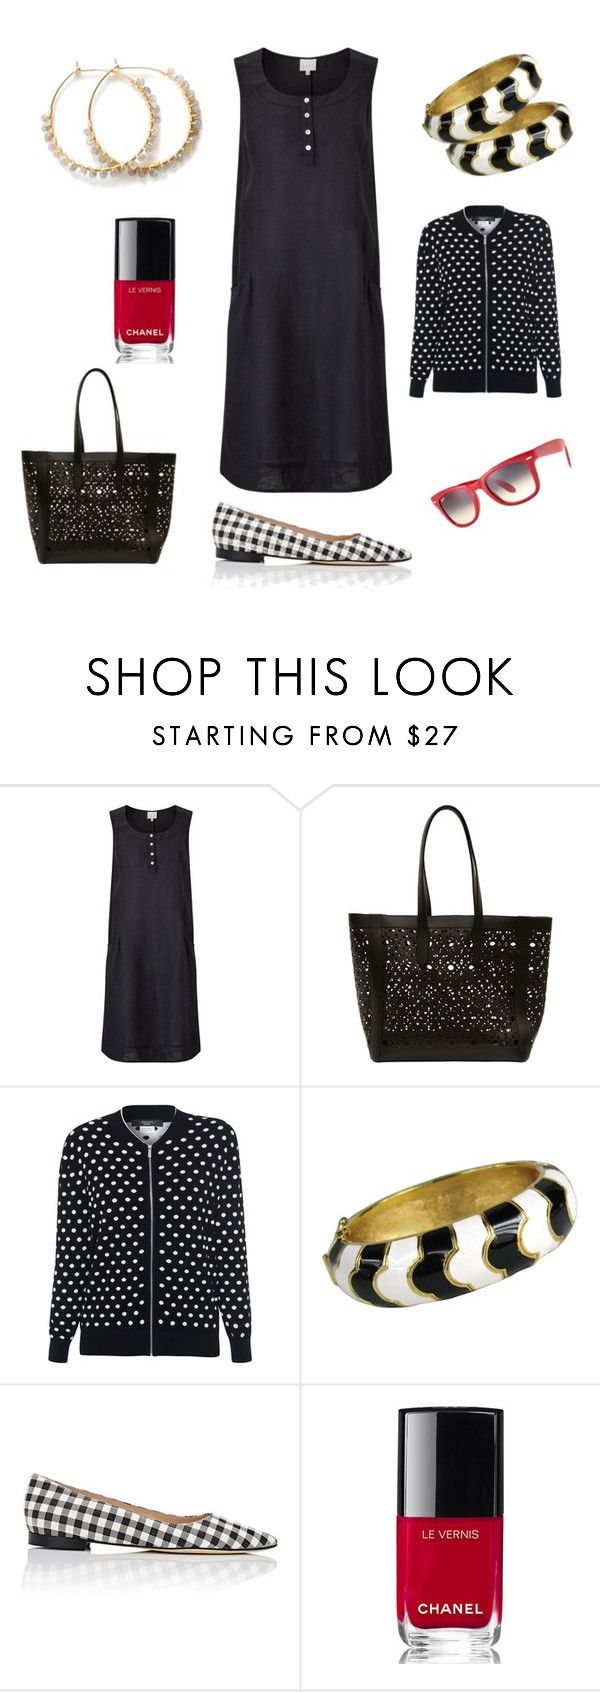 Les Petites Robes Noires by tishjett on Polyvore featuring EAST, Weekend Max Mara, Manolo Blahnik, MaxMara, Ciner, Ray-Ban and Chanel